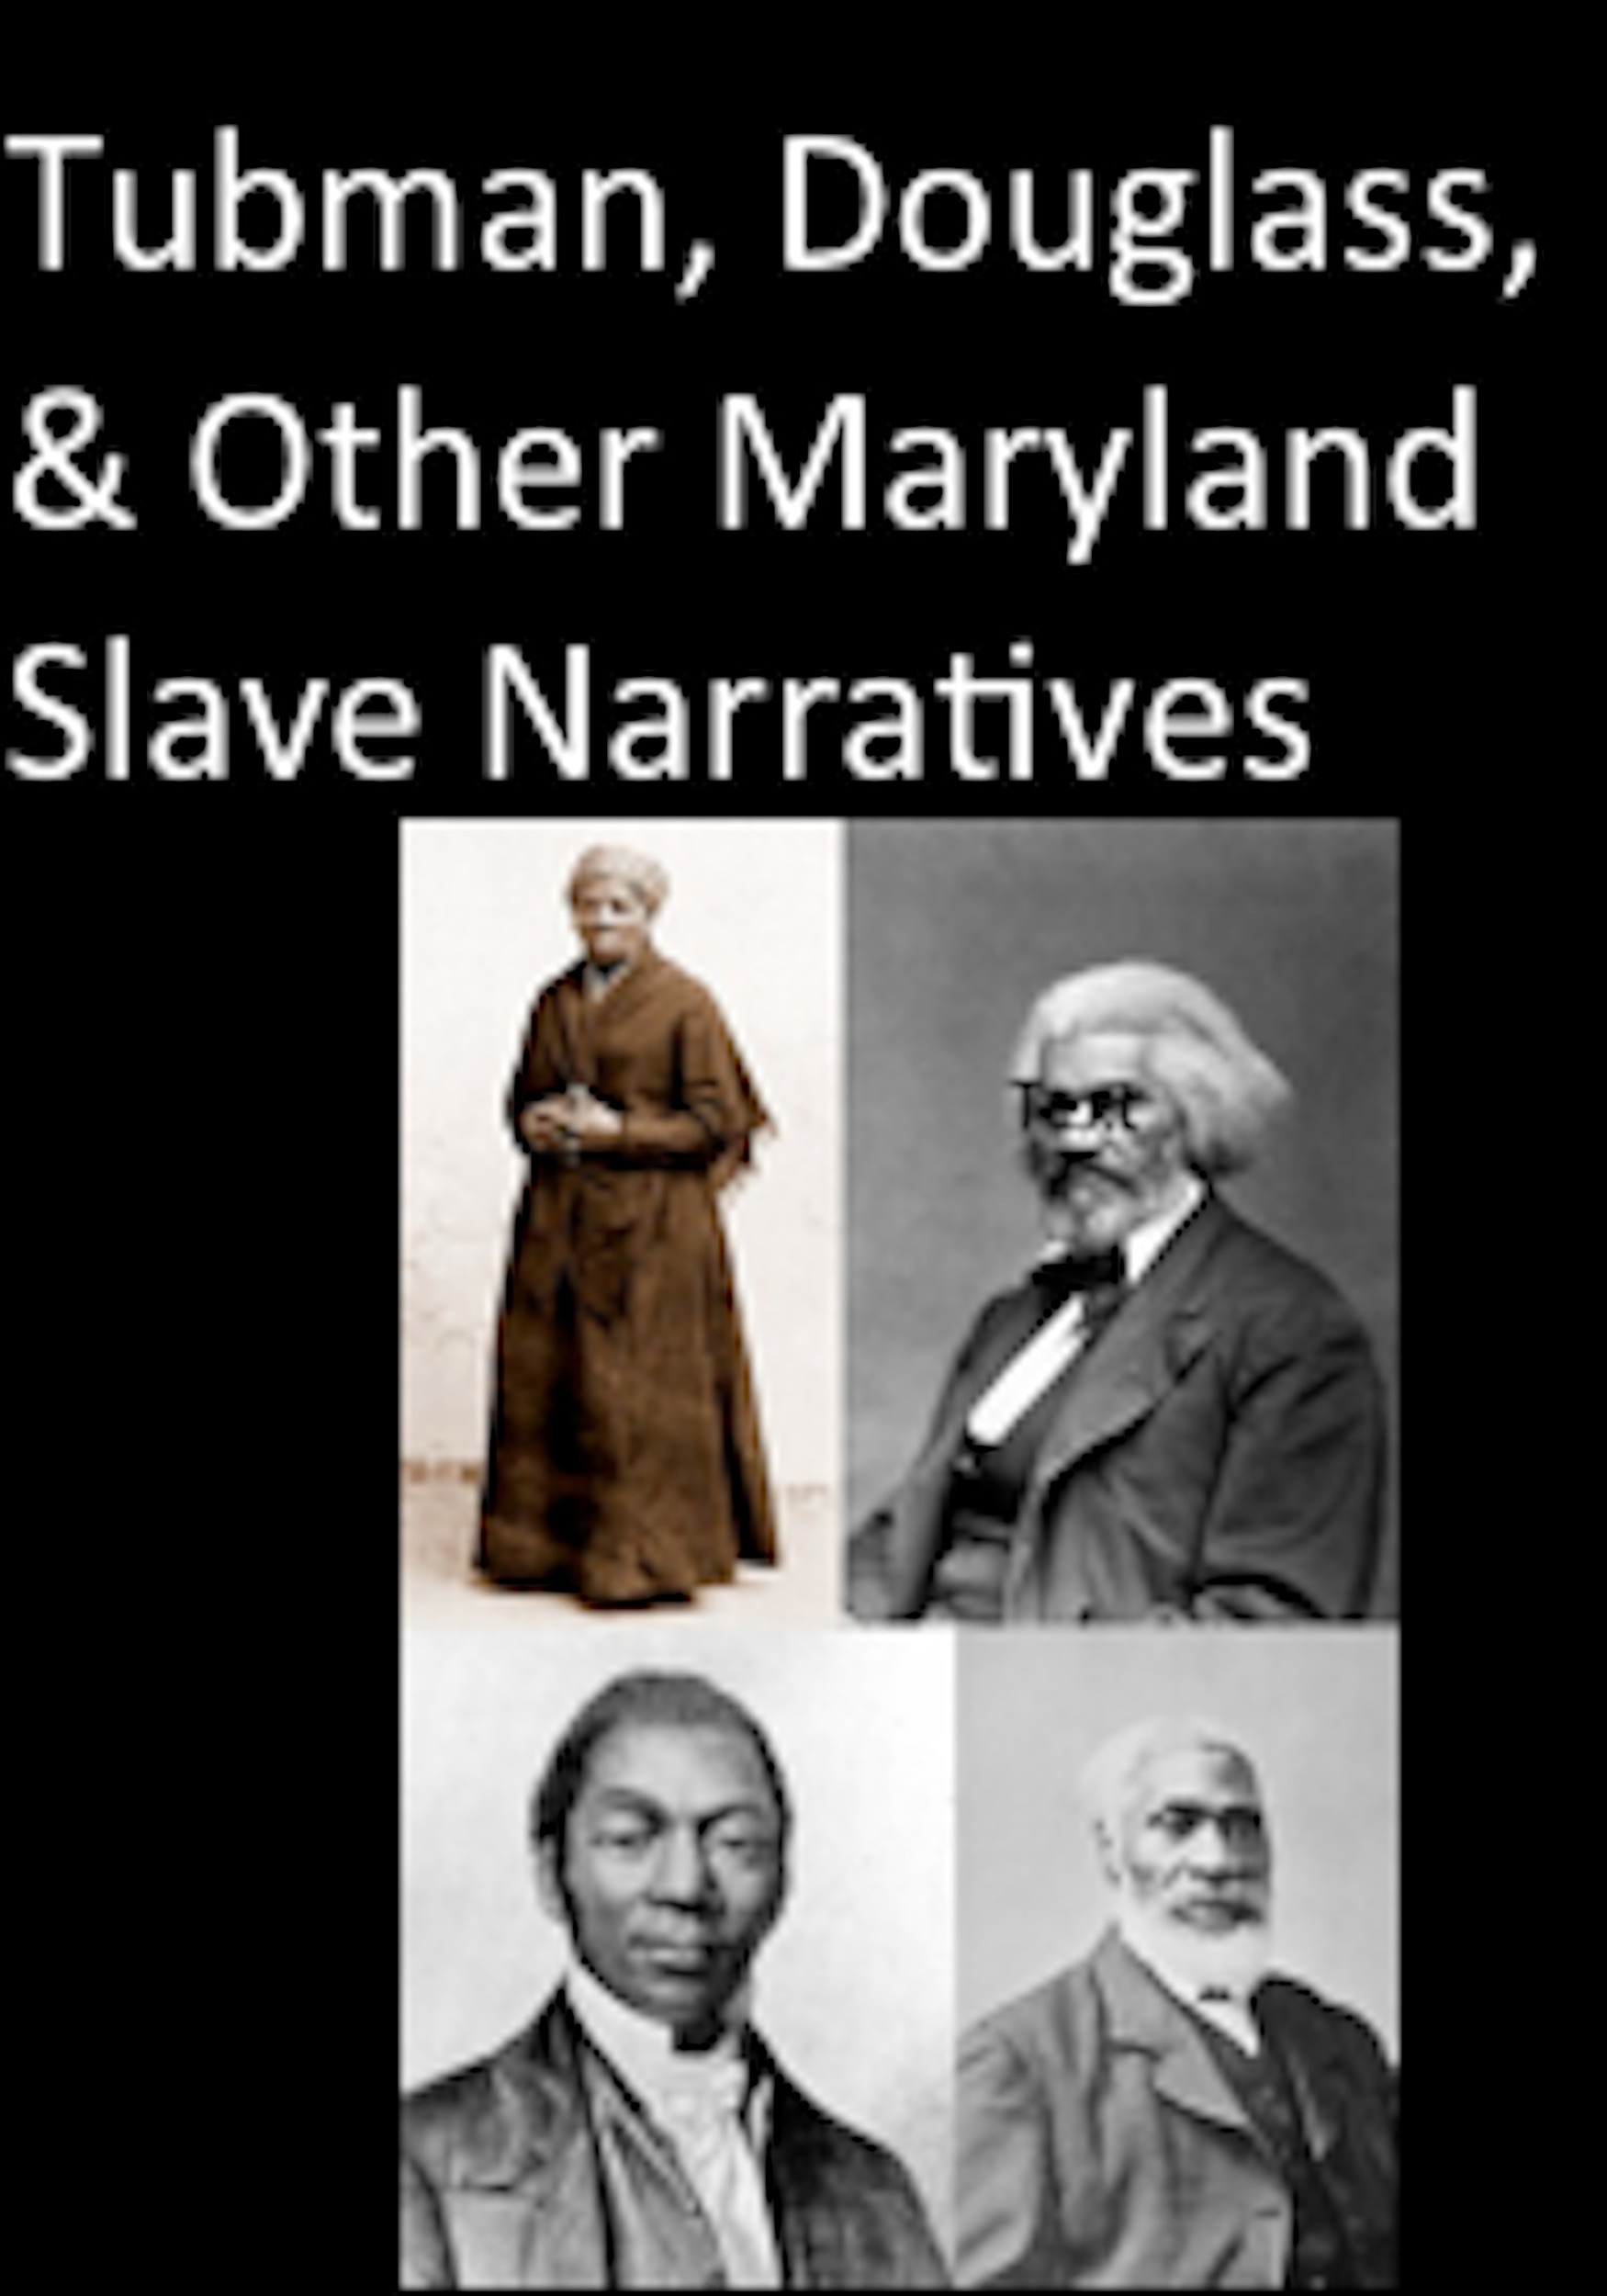 the slave narratives of frederick douglass Frederick douglass's slave narrative is readily accessible to high school students   douglass's narrative of his life as a slave lets readers feel the fear he has as.